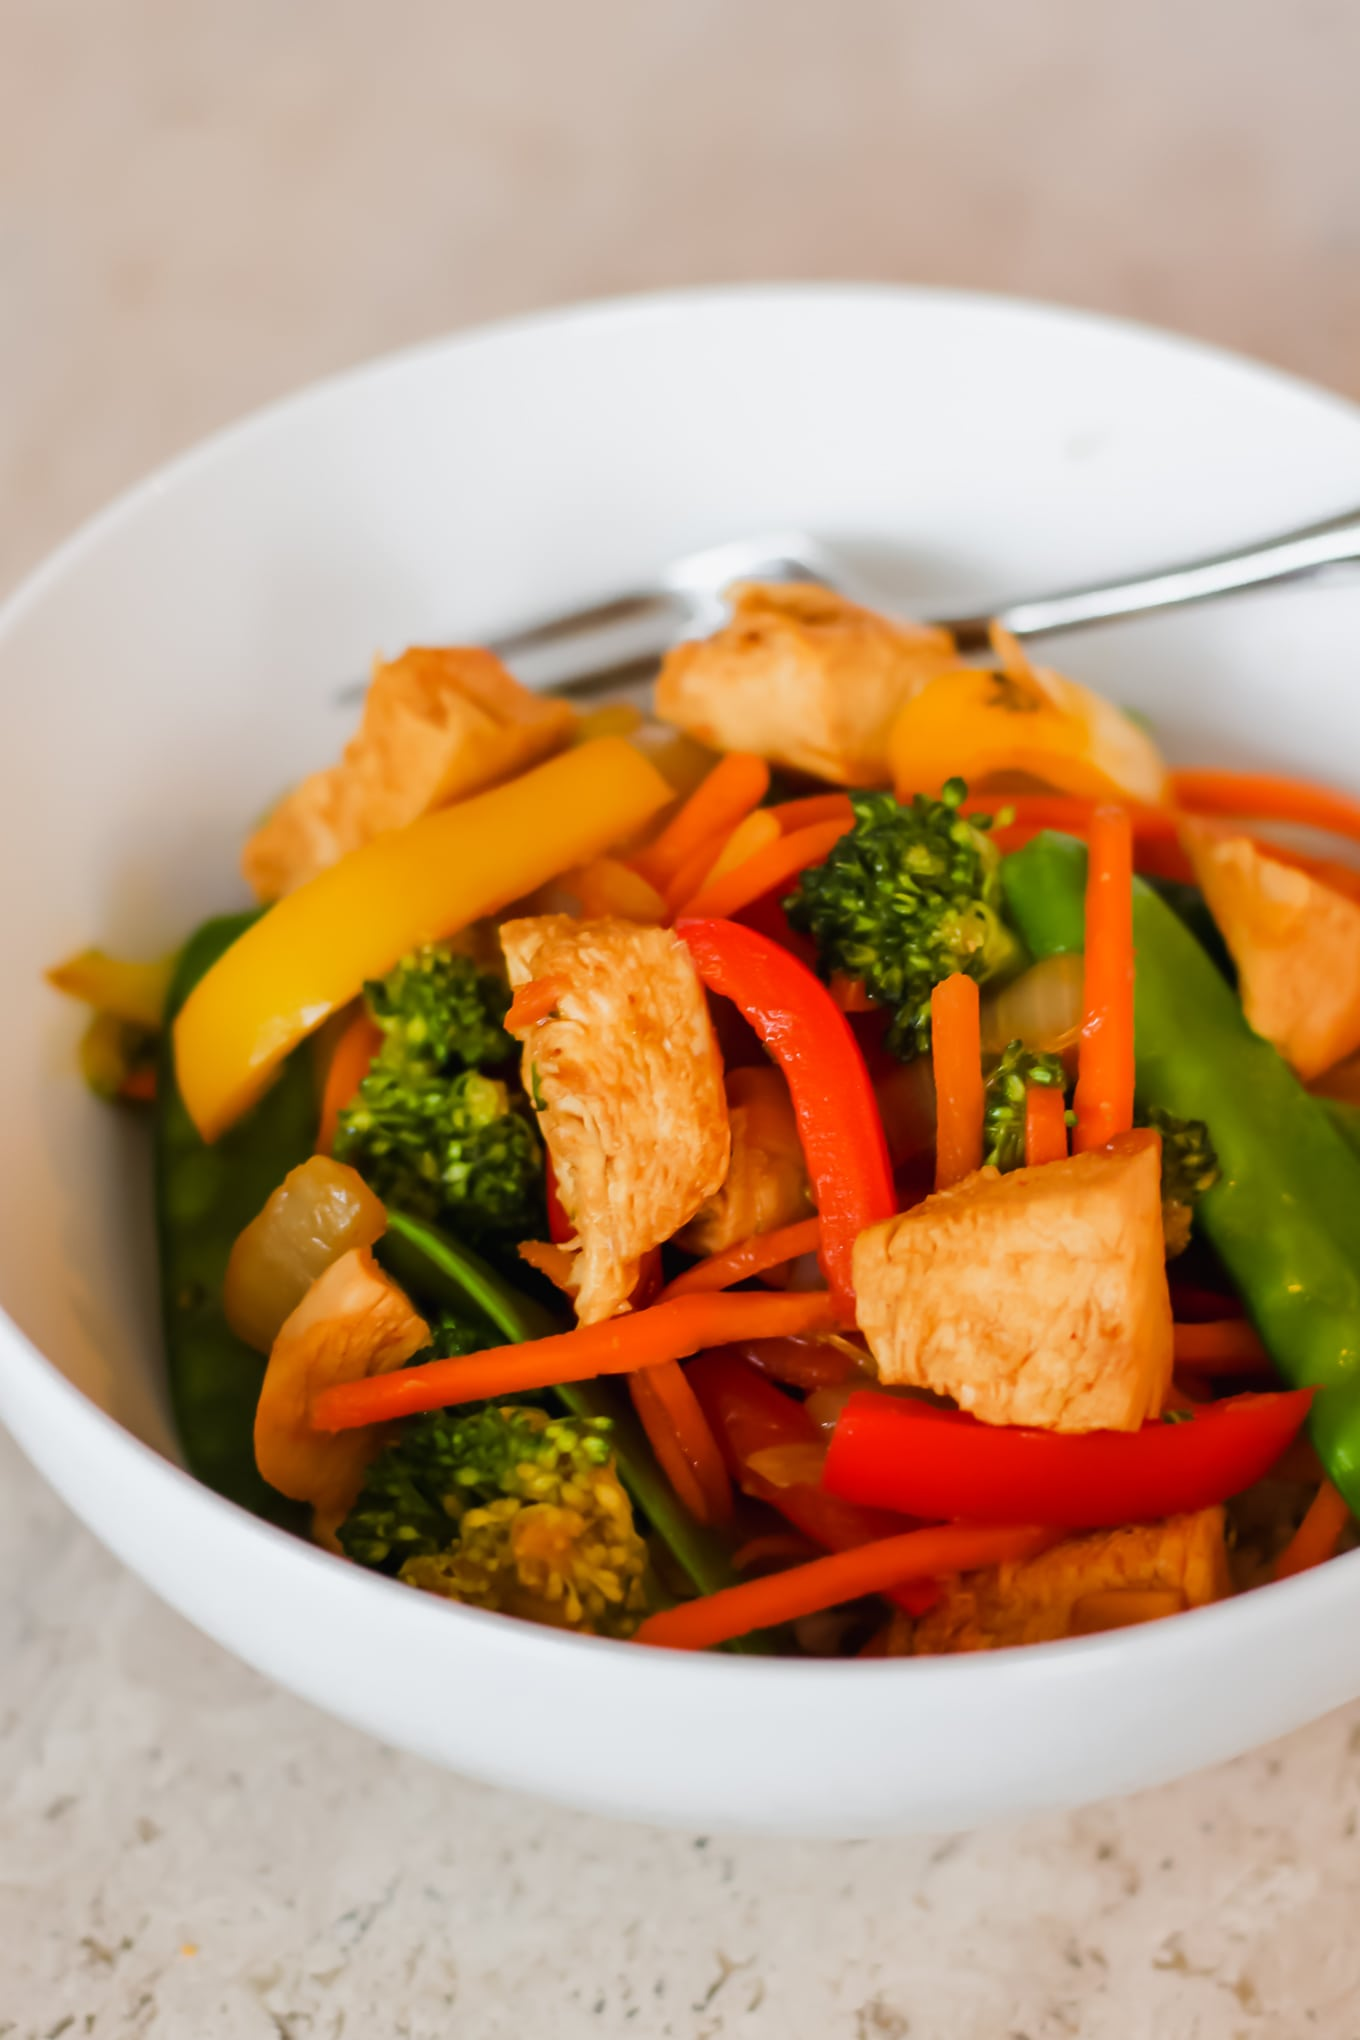 My Go-To Stir Fry Recipe